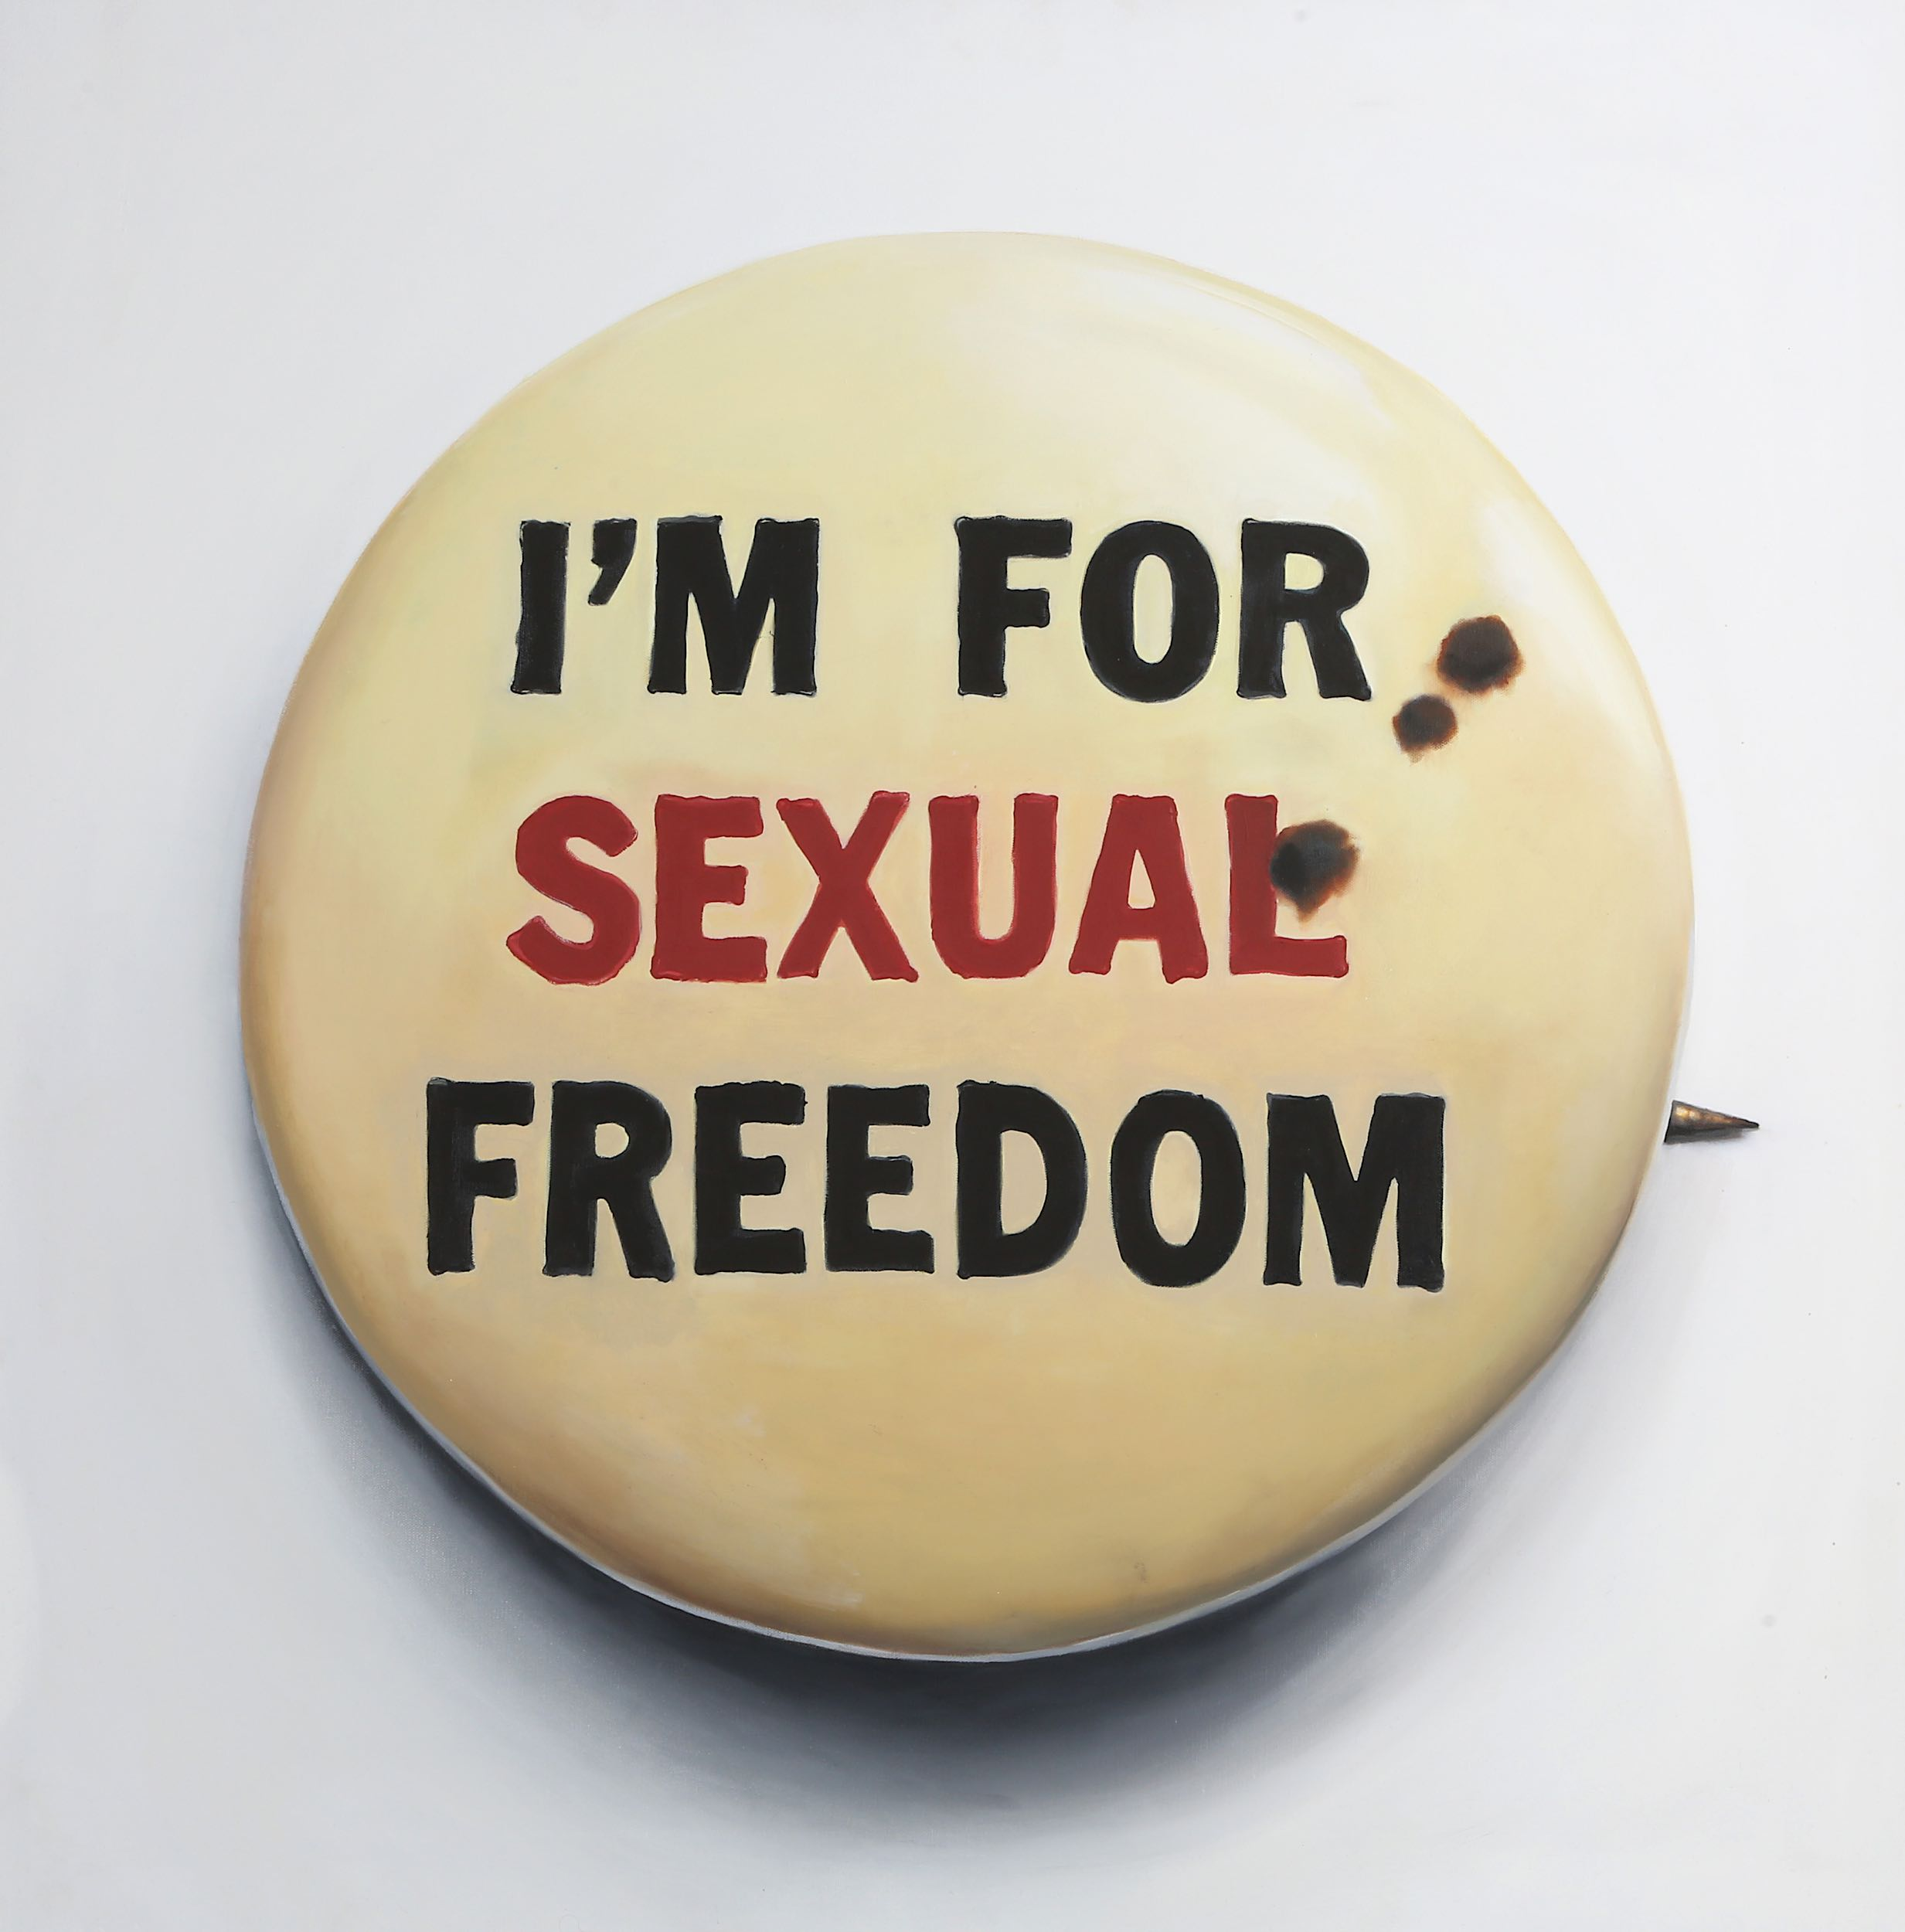 Lot 337 - Lucas Price (British b.1980), 'I'm For Sexual Freedom', 2015